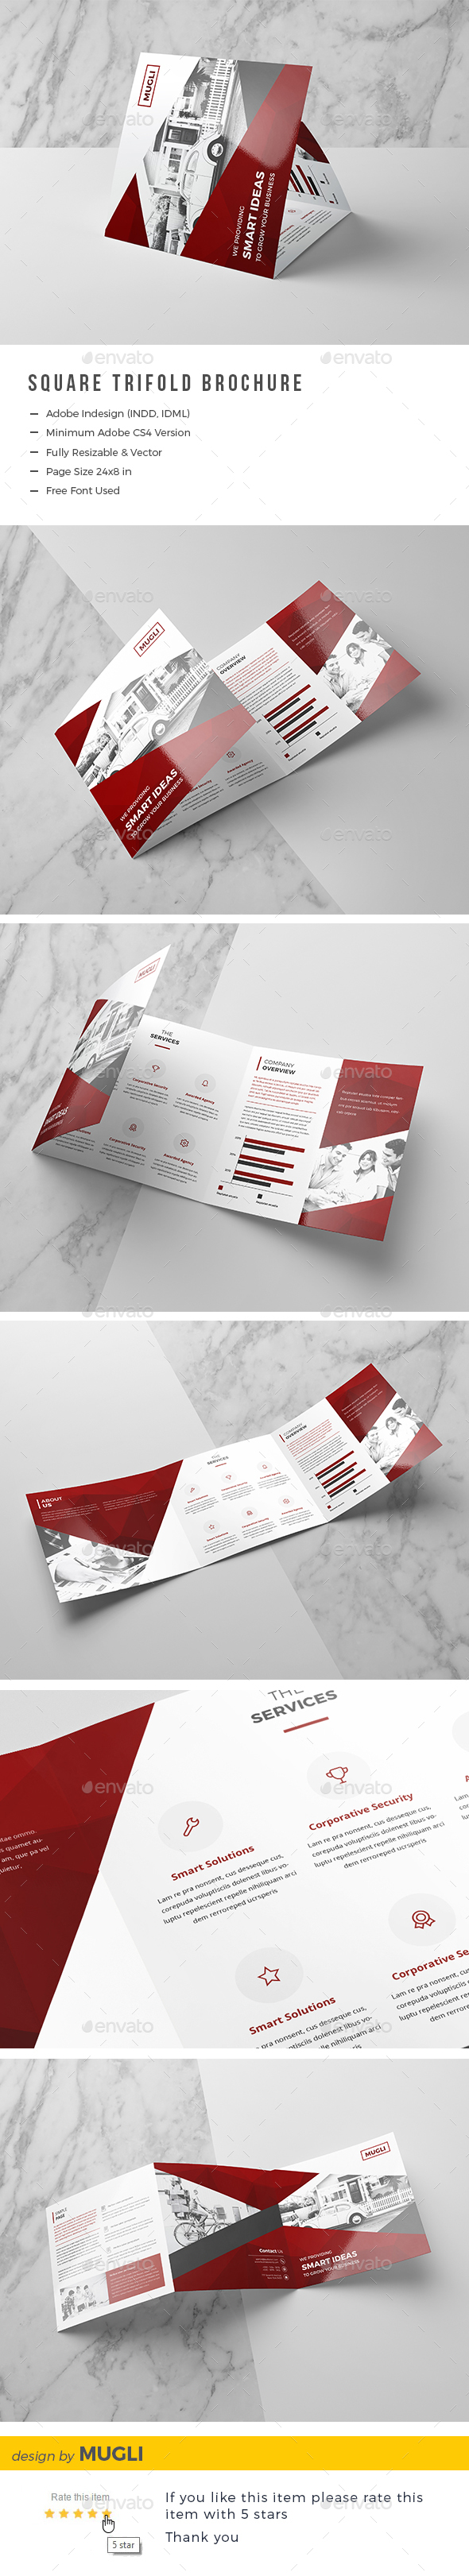 Square Trifold Brochure - Corporate Brochures